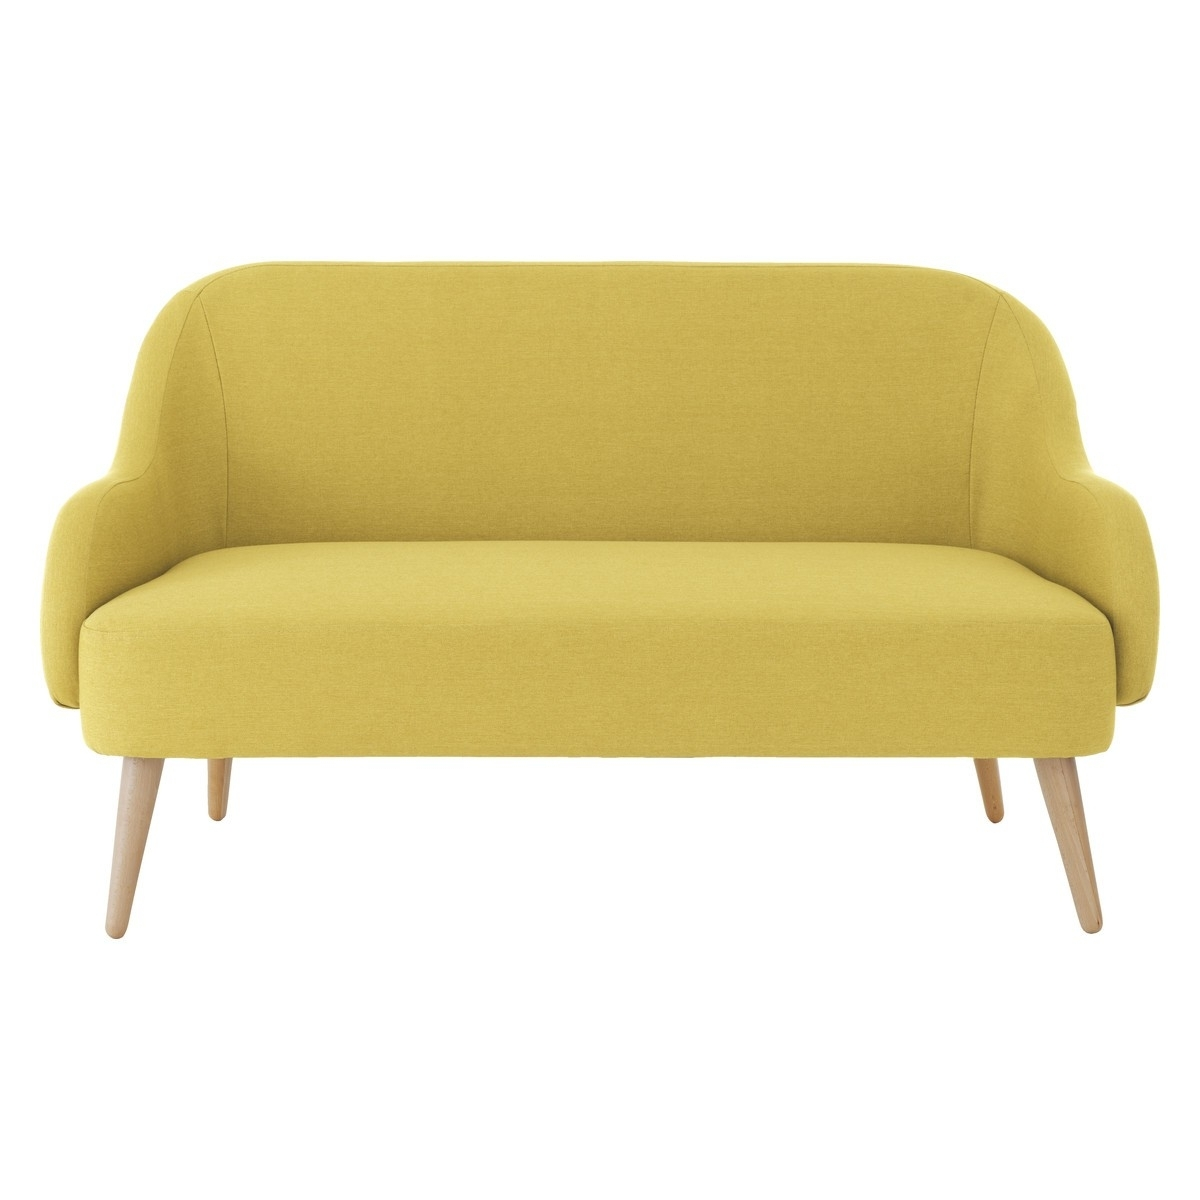 Yellow Fabric, Sofa Inside Popular Small 2 Seater Sofas (View 4 of 20)